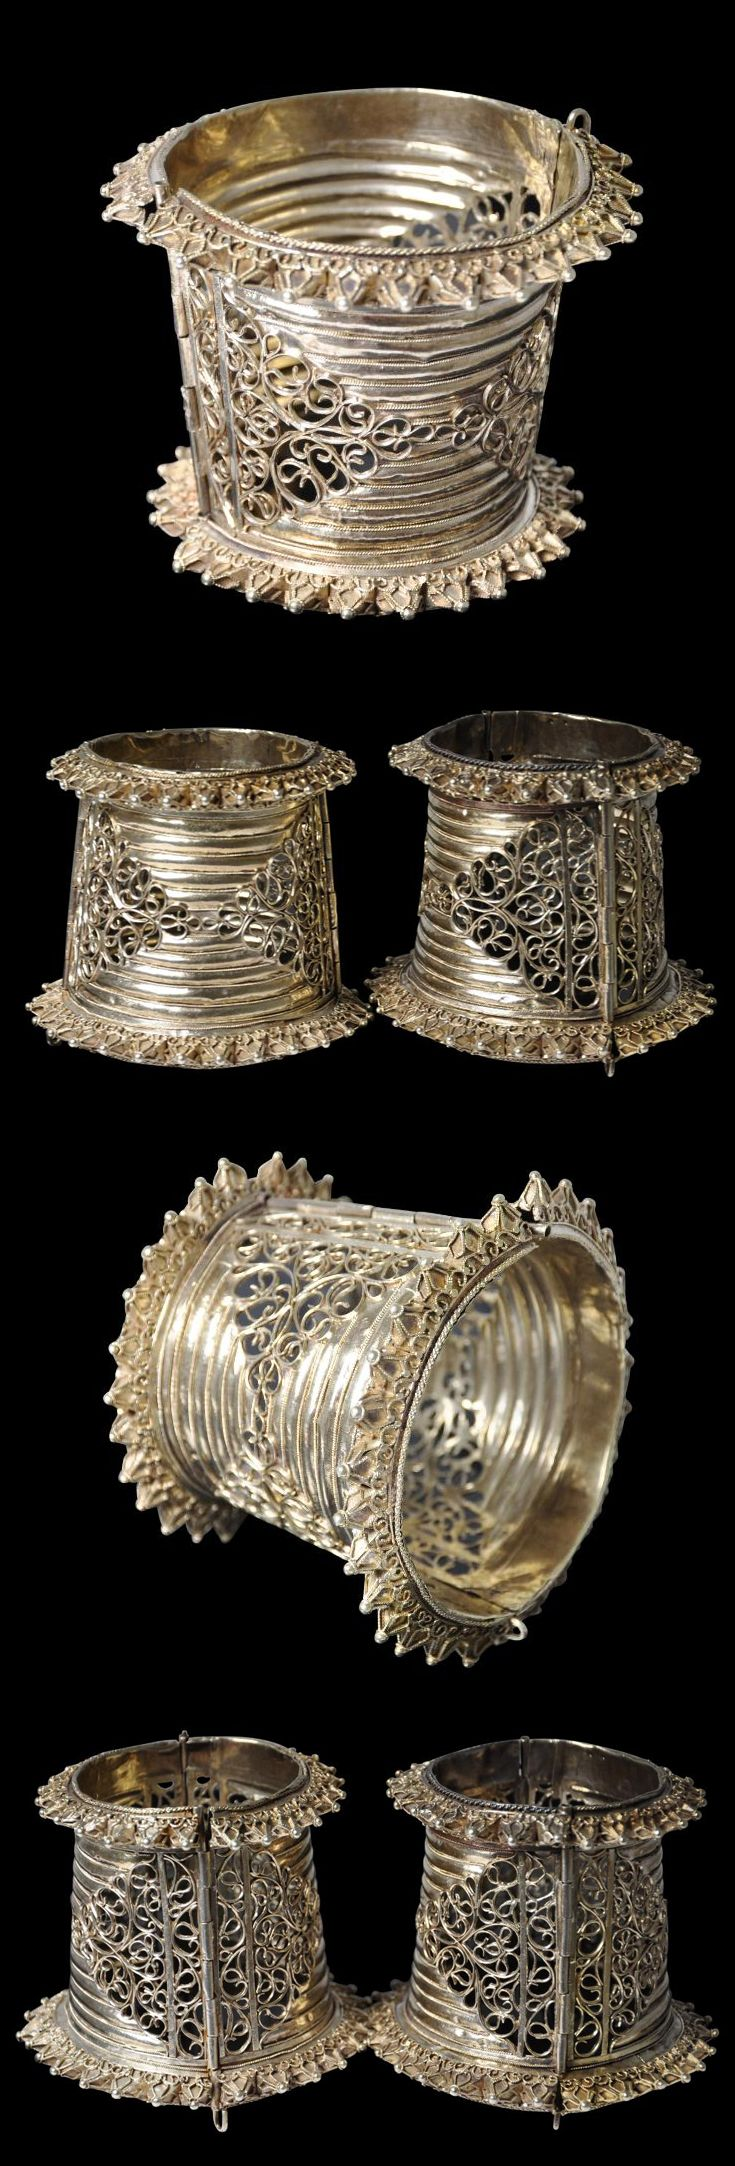 Indonesia | Rare Pair of Gold Cuff Bracelets (Tigero Tedong) | Bugis People, South Sulawesi | 19th century | Price on request.